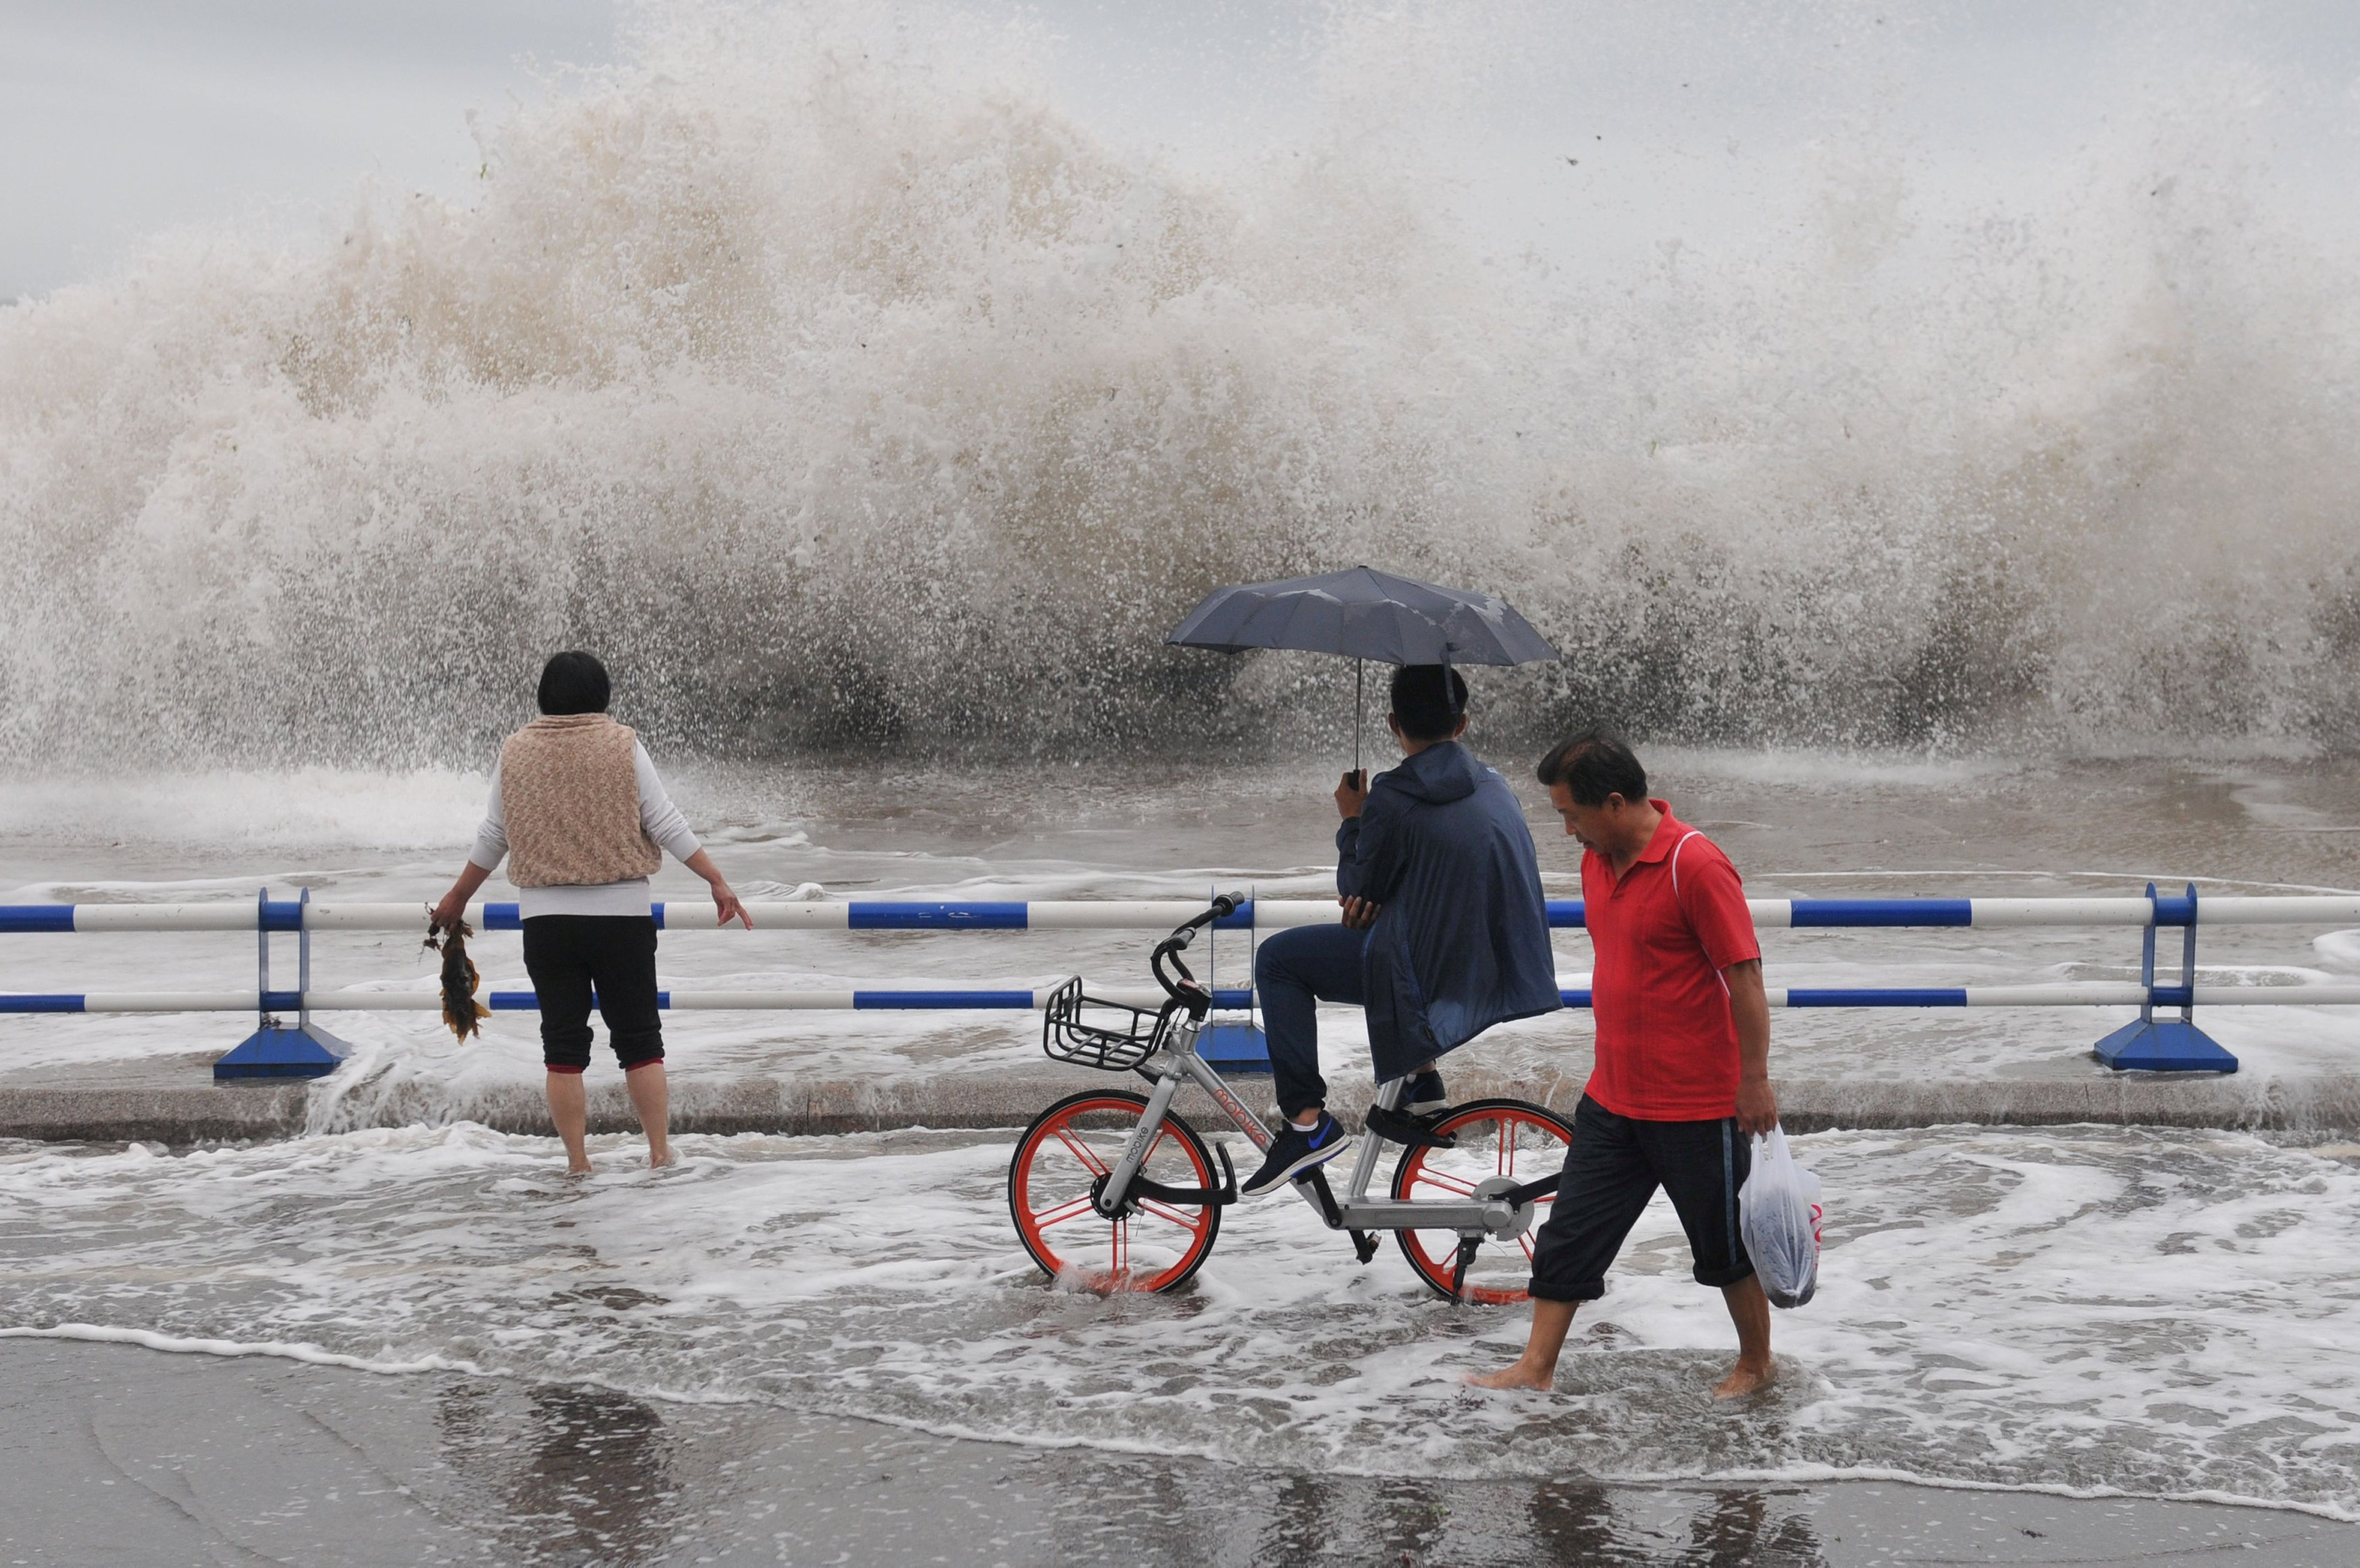 Sea level rise isn't just happening, it's getting faster